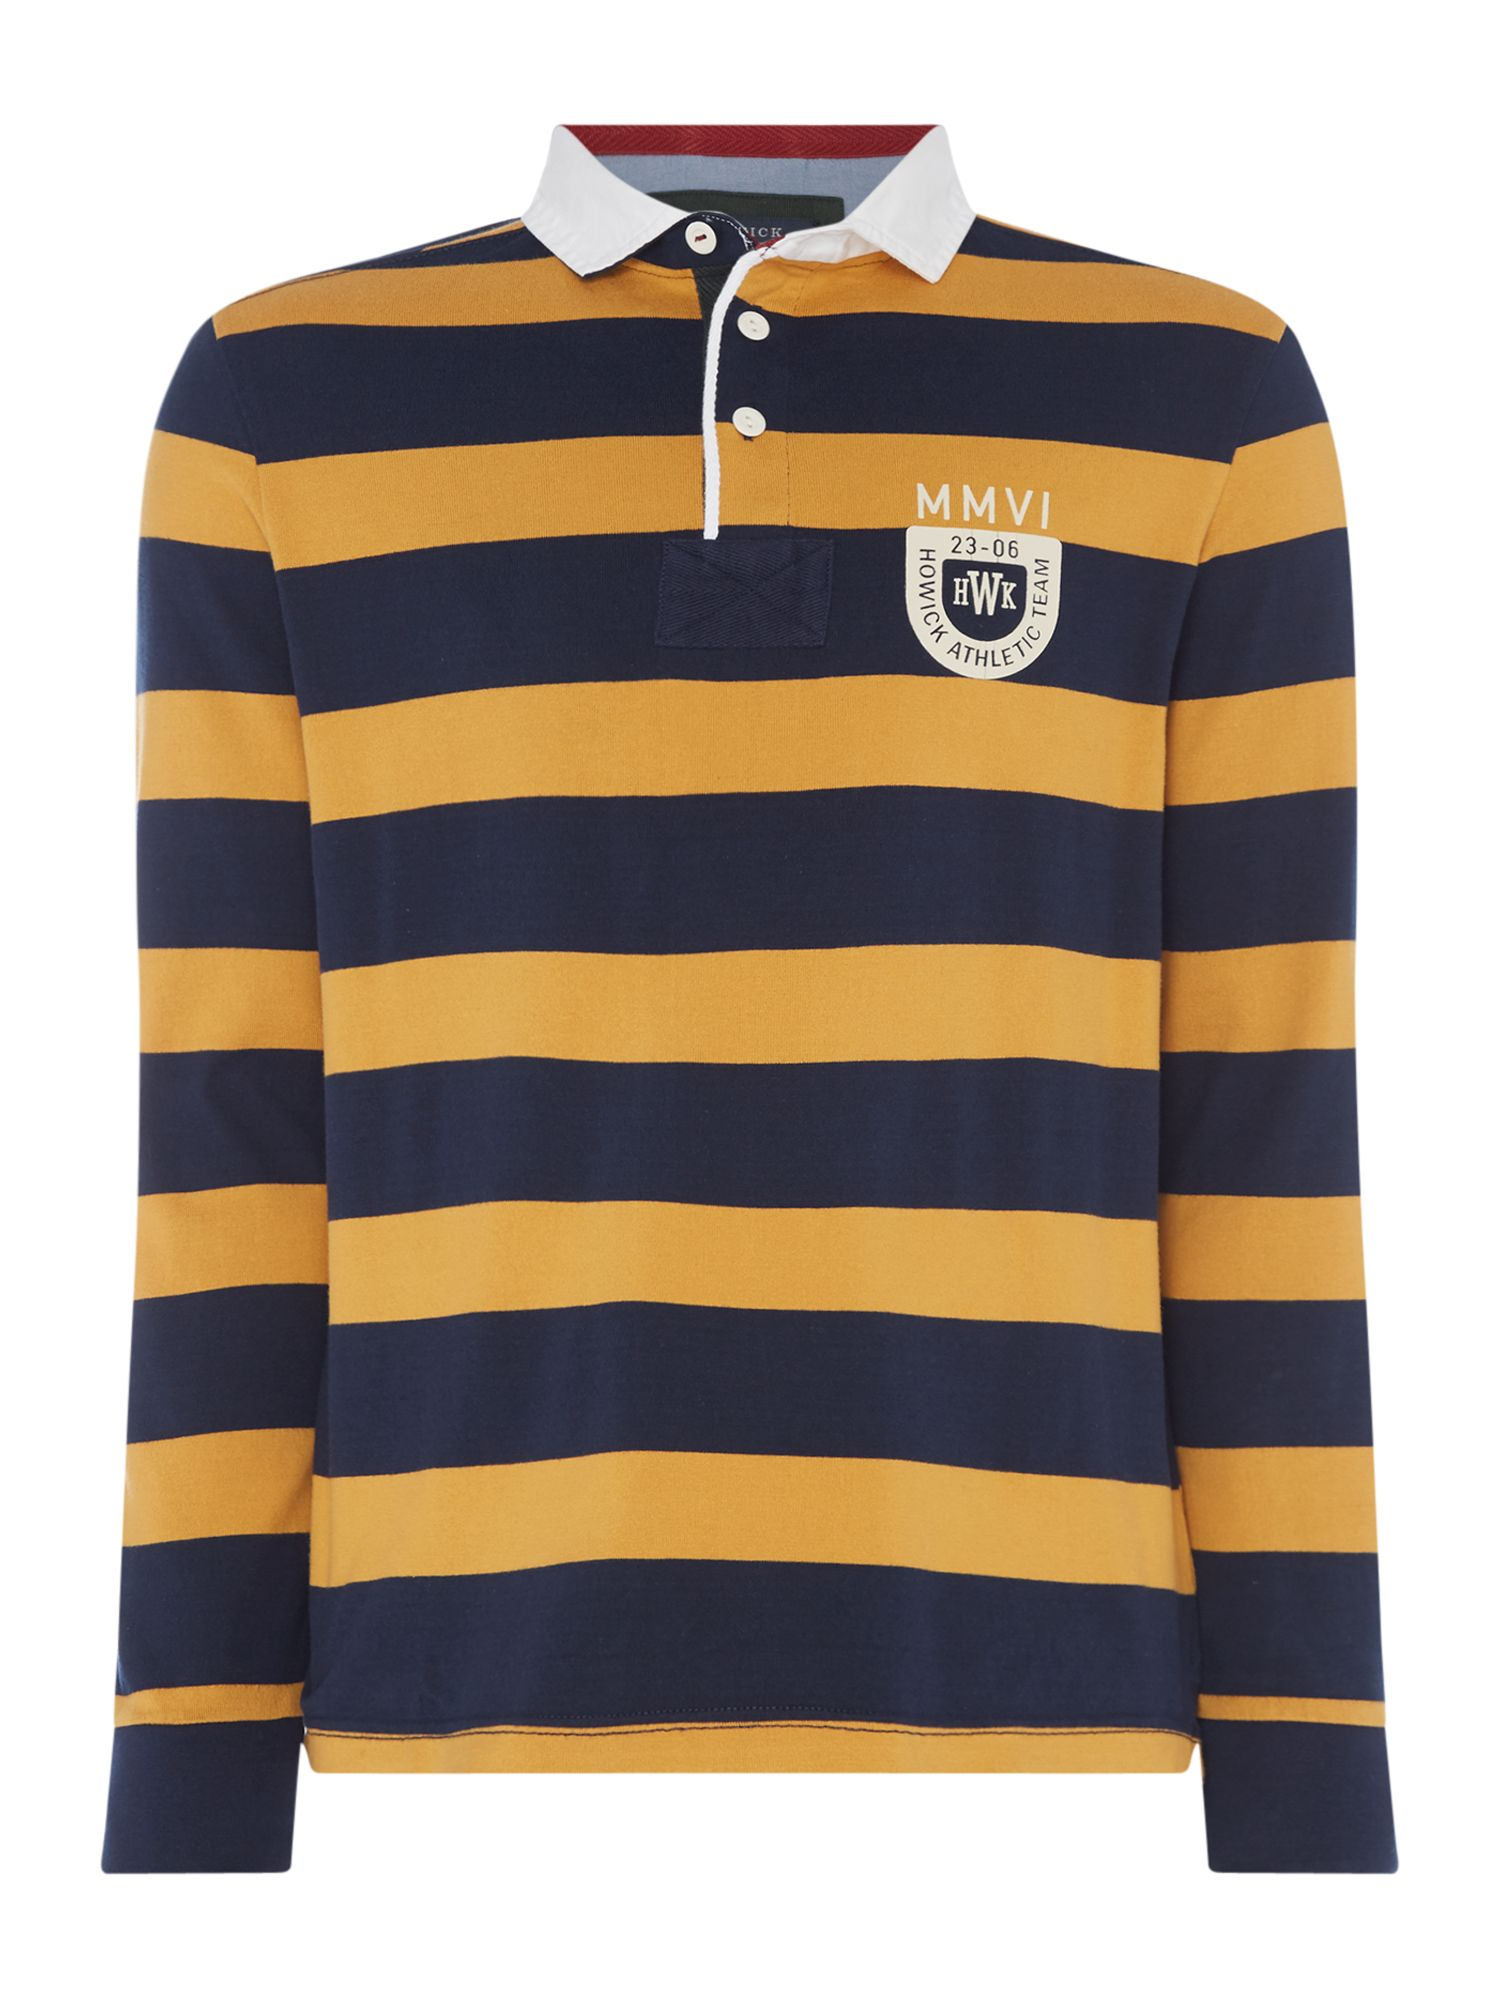 Men's Howick Montgomery Stripe Long Sleeve Rugby Shirt, Gold